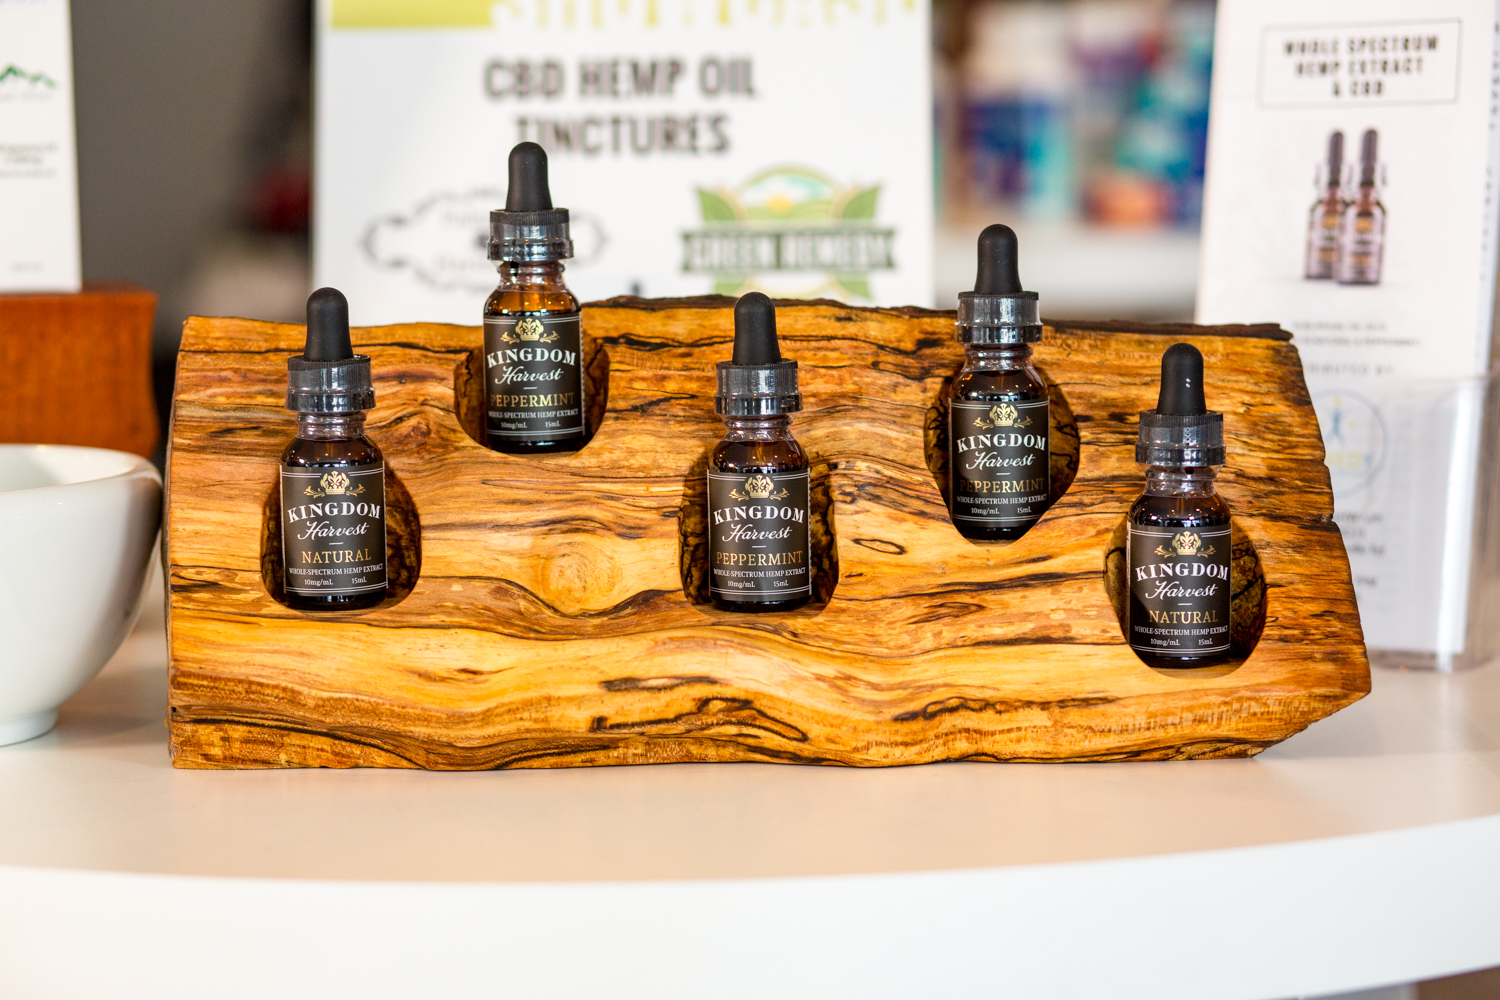 Kingdom Harvest CBD is sold in Remedy Health and Wellness Store in Asheville